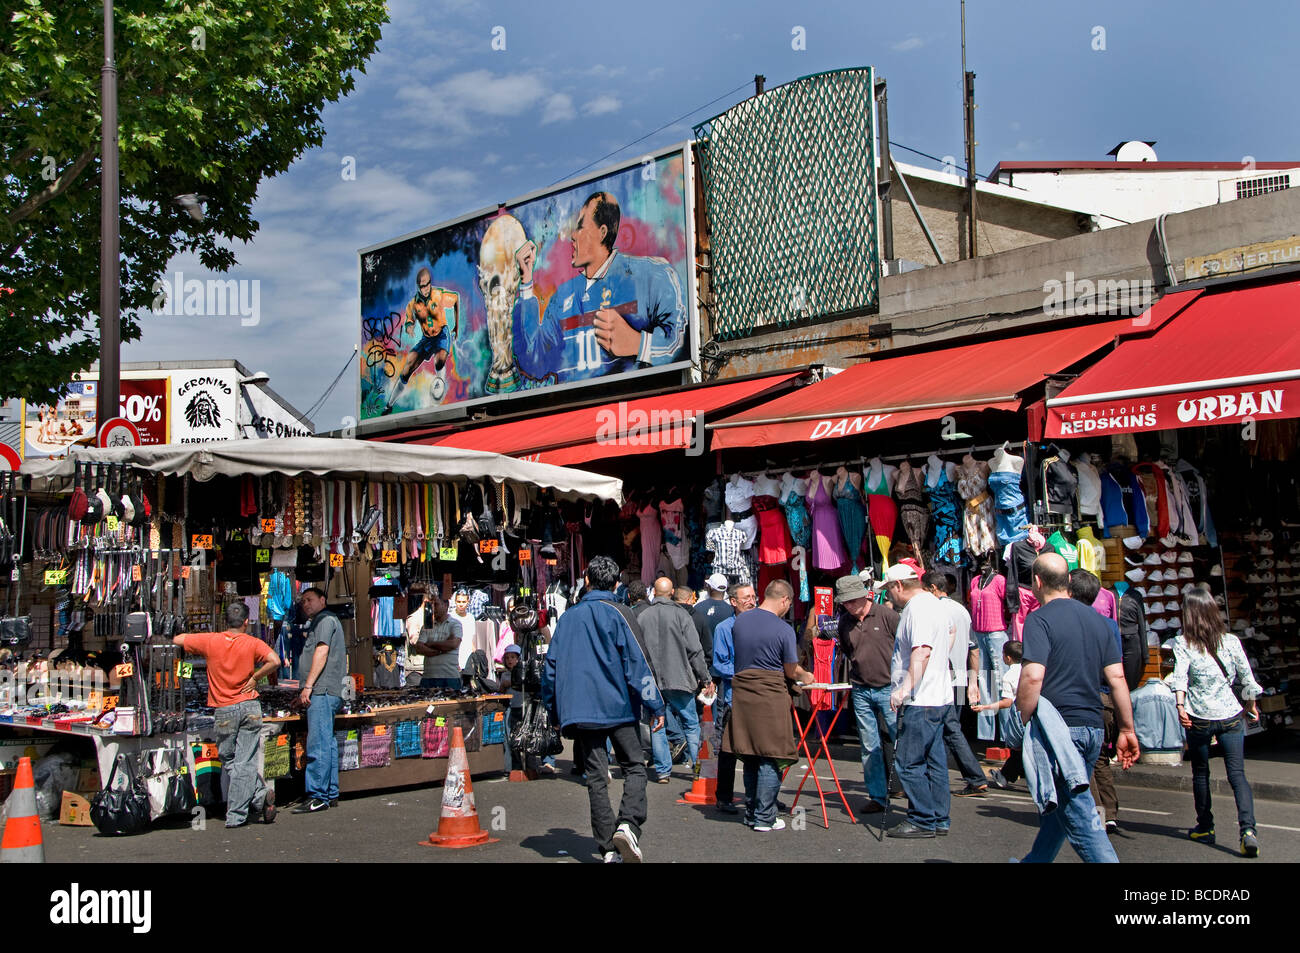 marche aux puces de saint ouen flea market paris stock photo 24889941 alamy. Black Bedroom Furniture Sets. Home Design Ideas